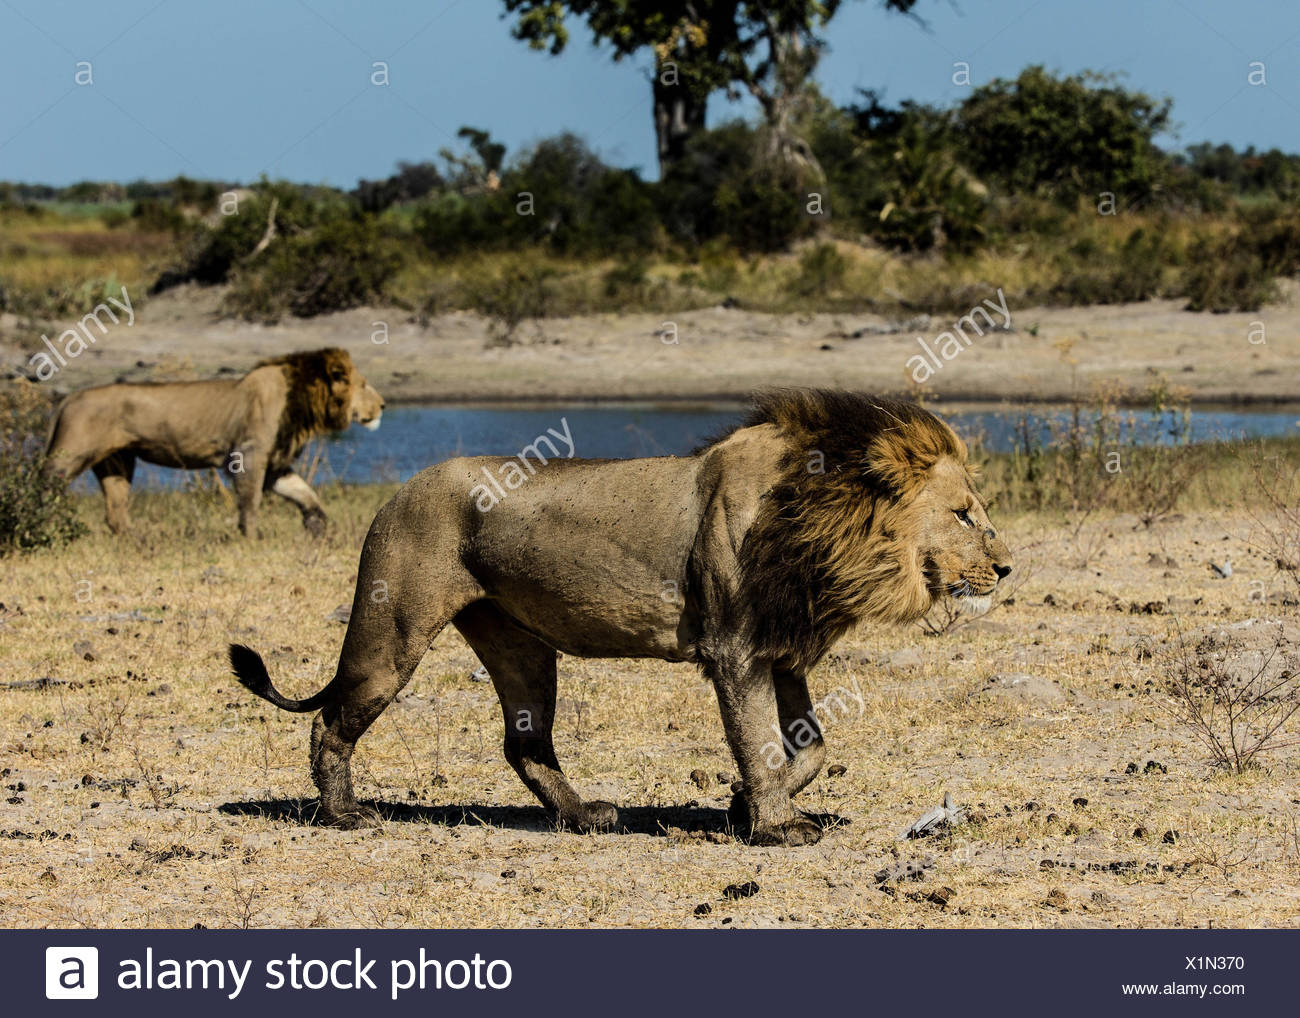 A pair of male lions, Panthera Leo, crossing a dry plain in Botswana's Okavango Delta. - Stock Image